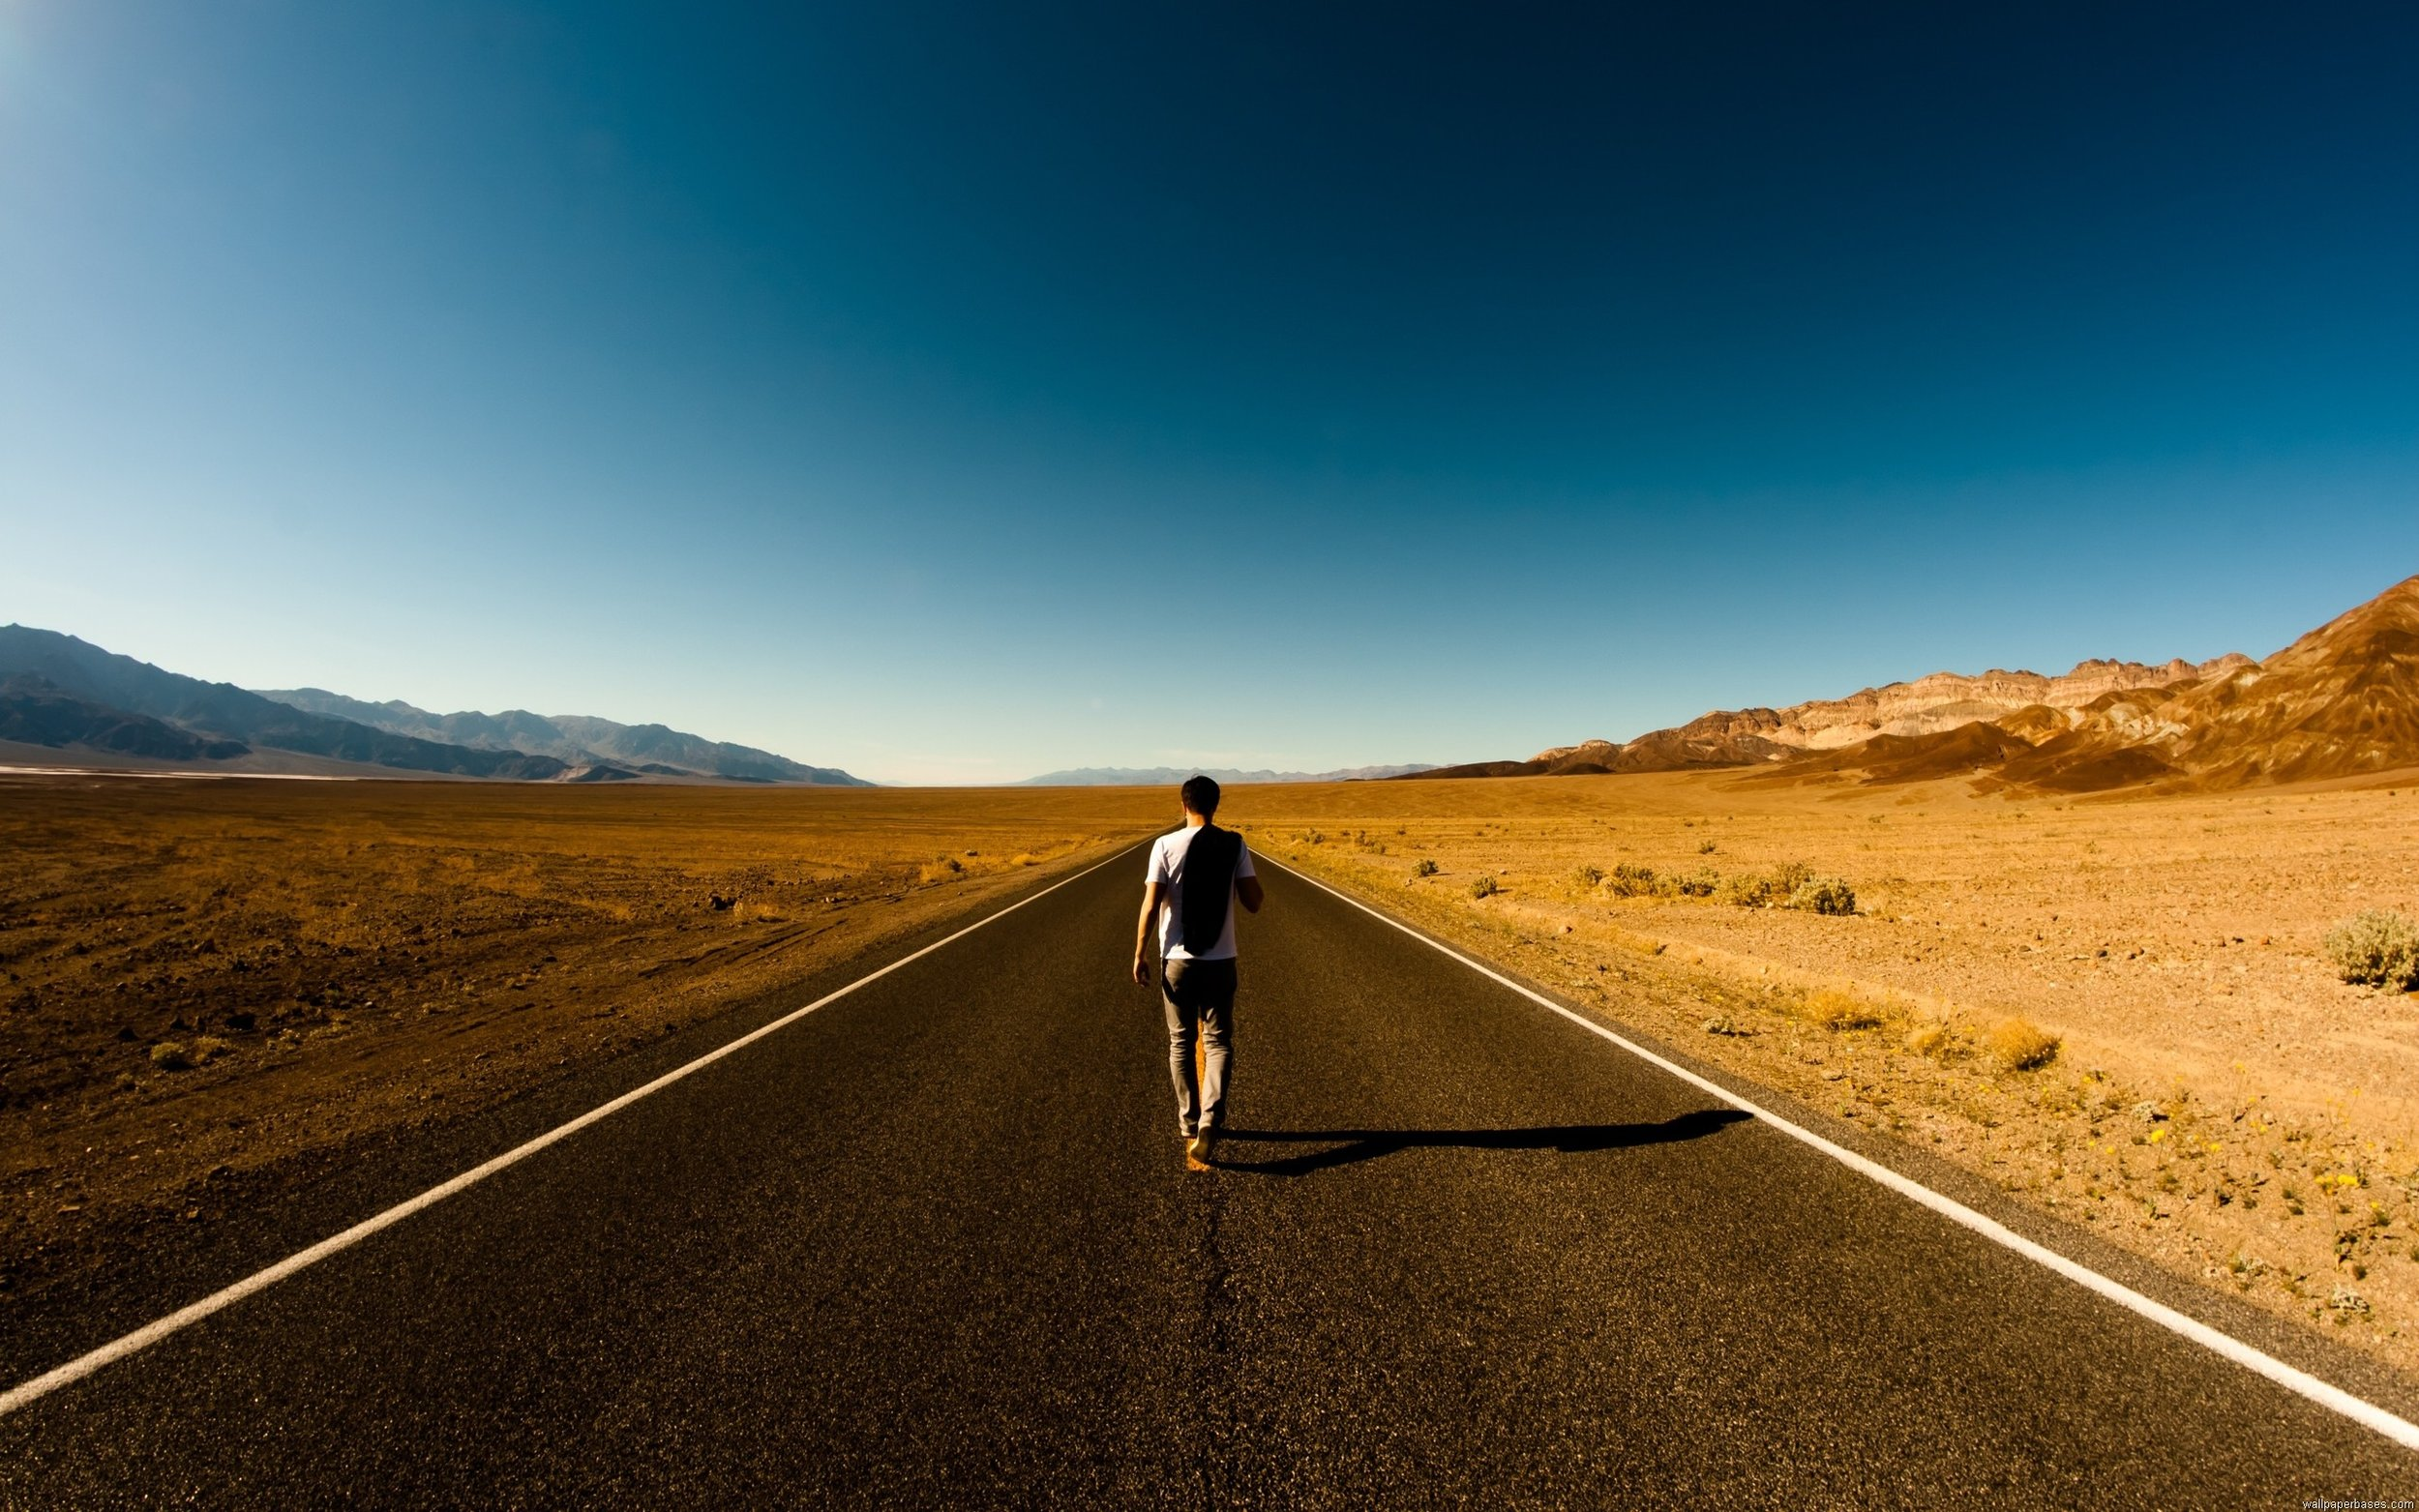 Man Walking On Highway.jpg